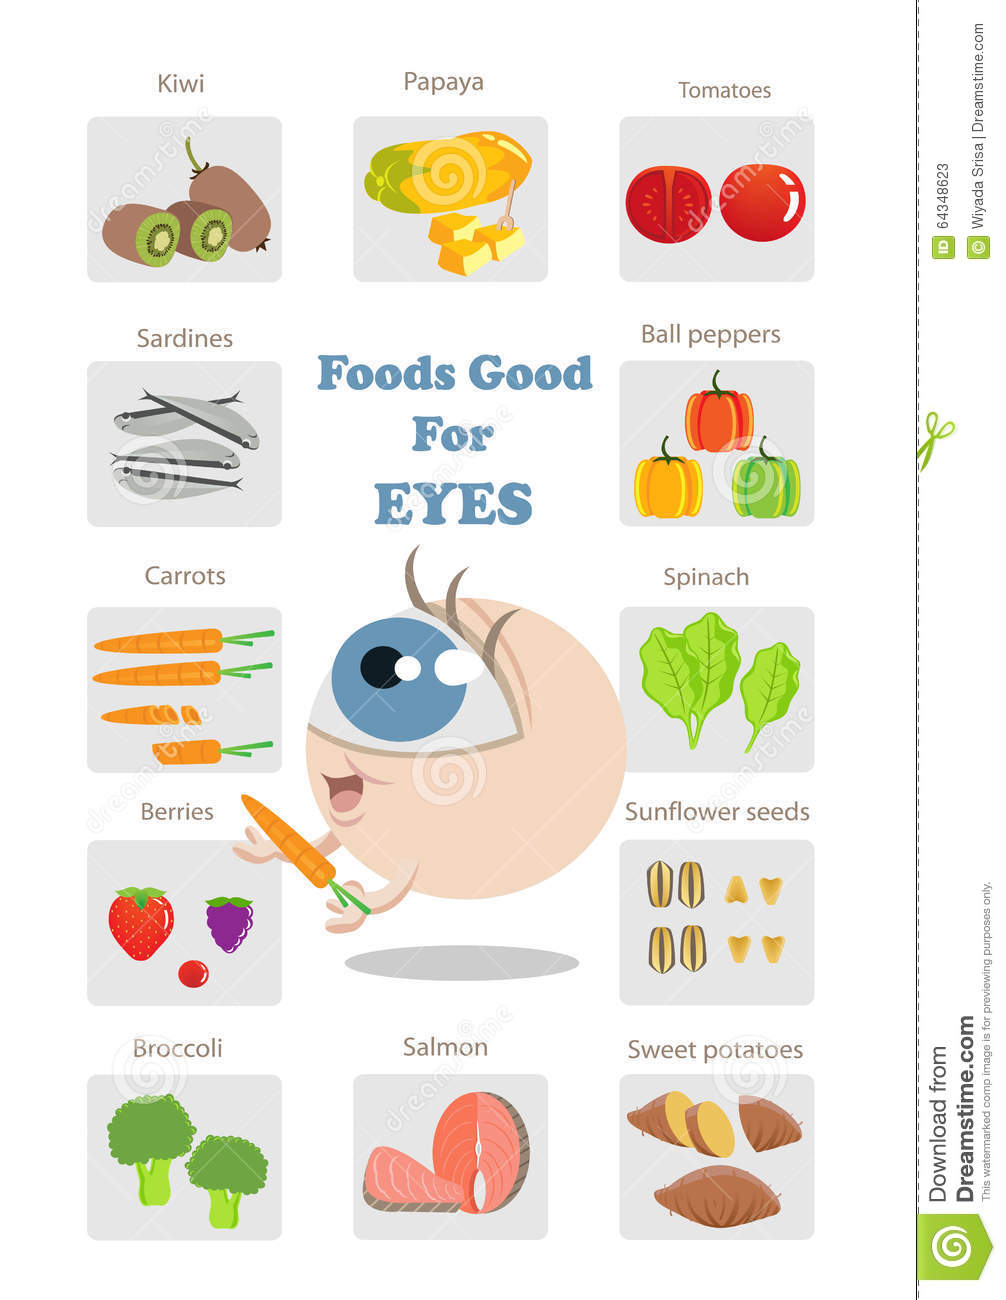 Food and good health - Royalty Free Vector Download Food Good Eyes Health